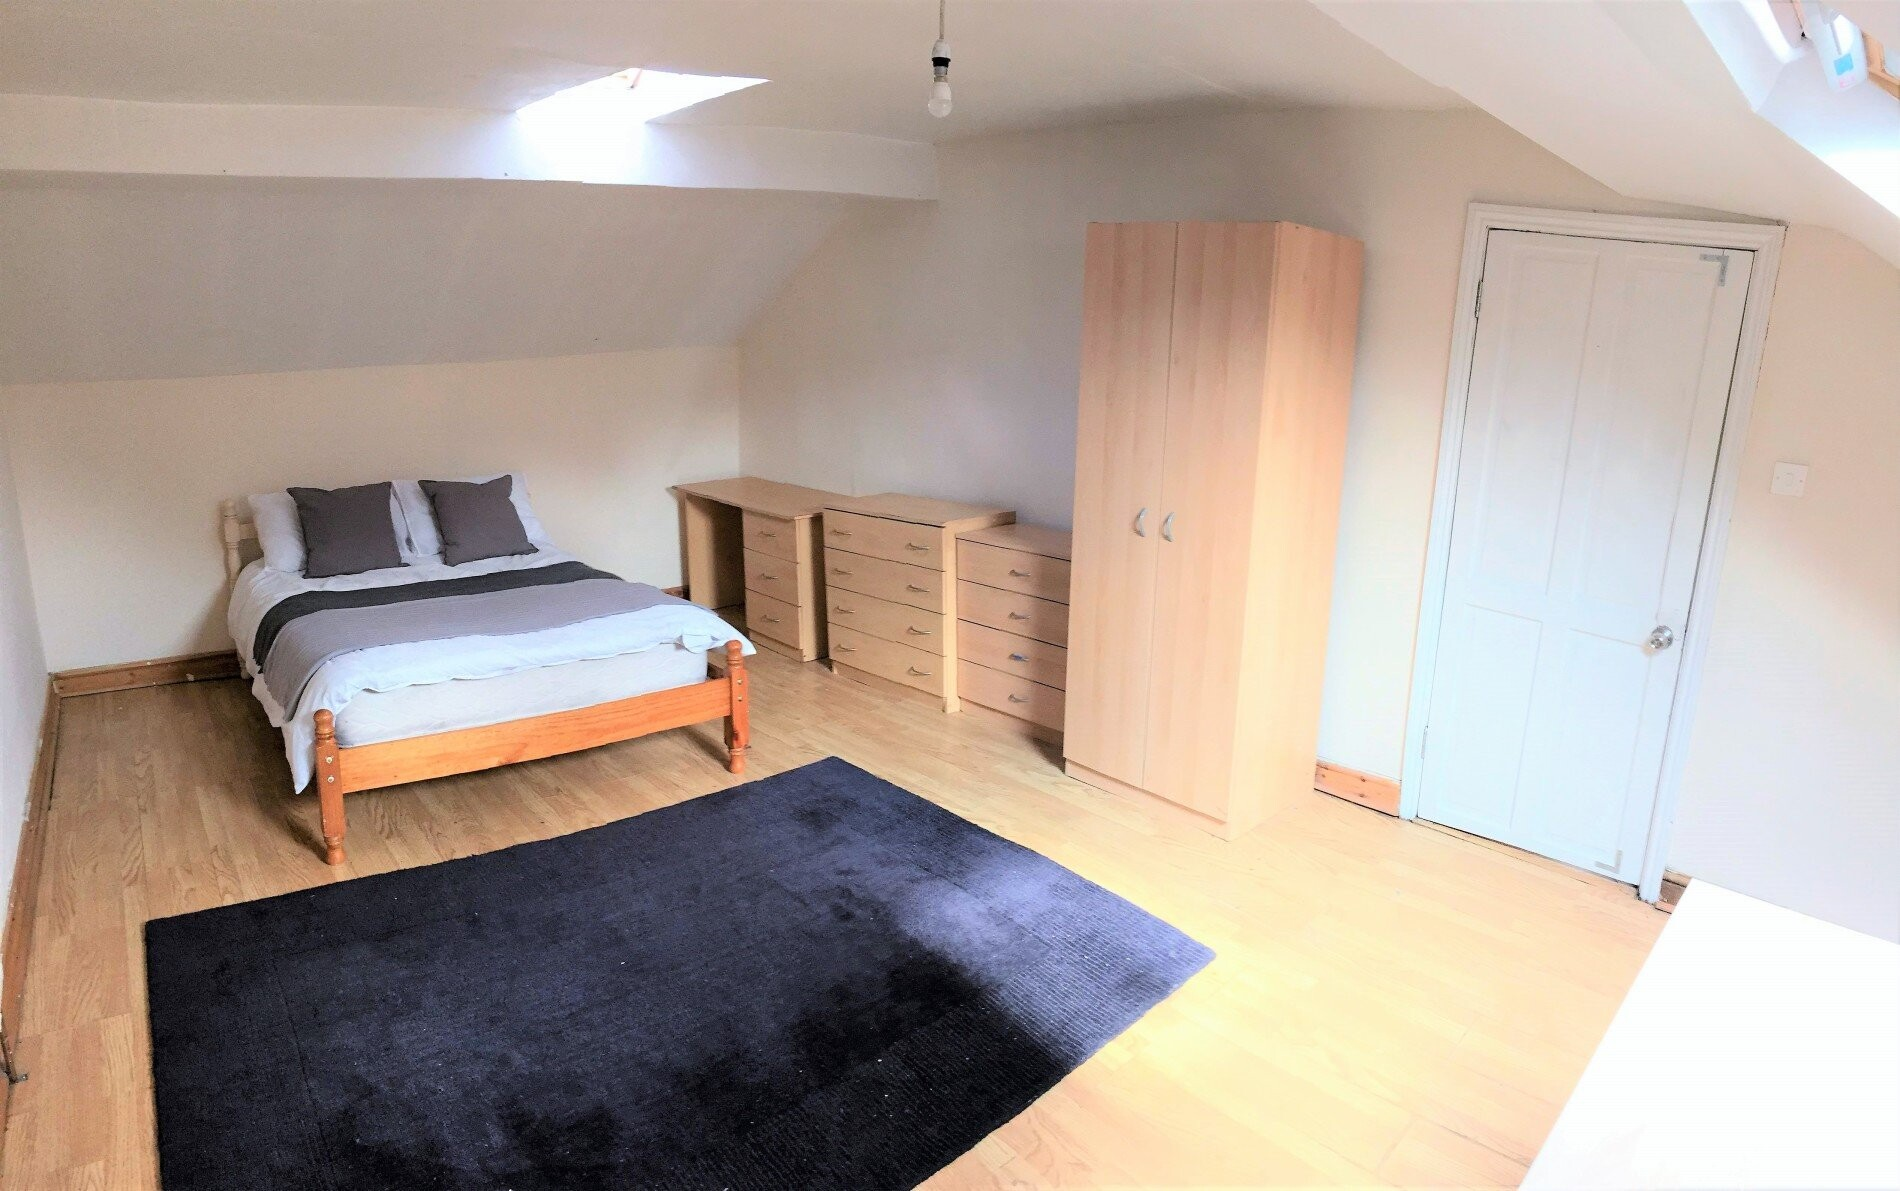 4 bedroom apartment for rent Barber Road, Sheffield, S10 ...